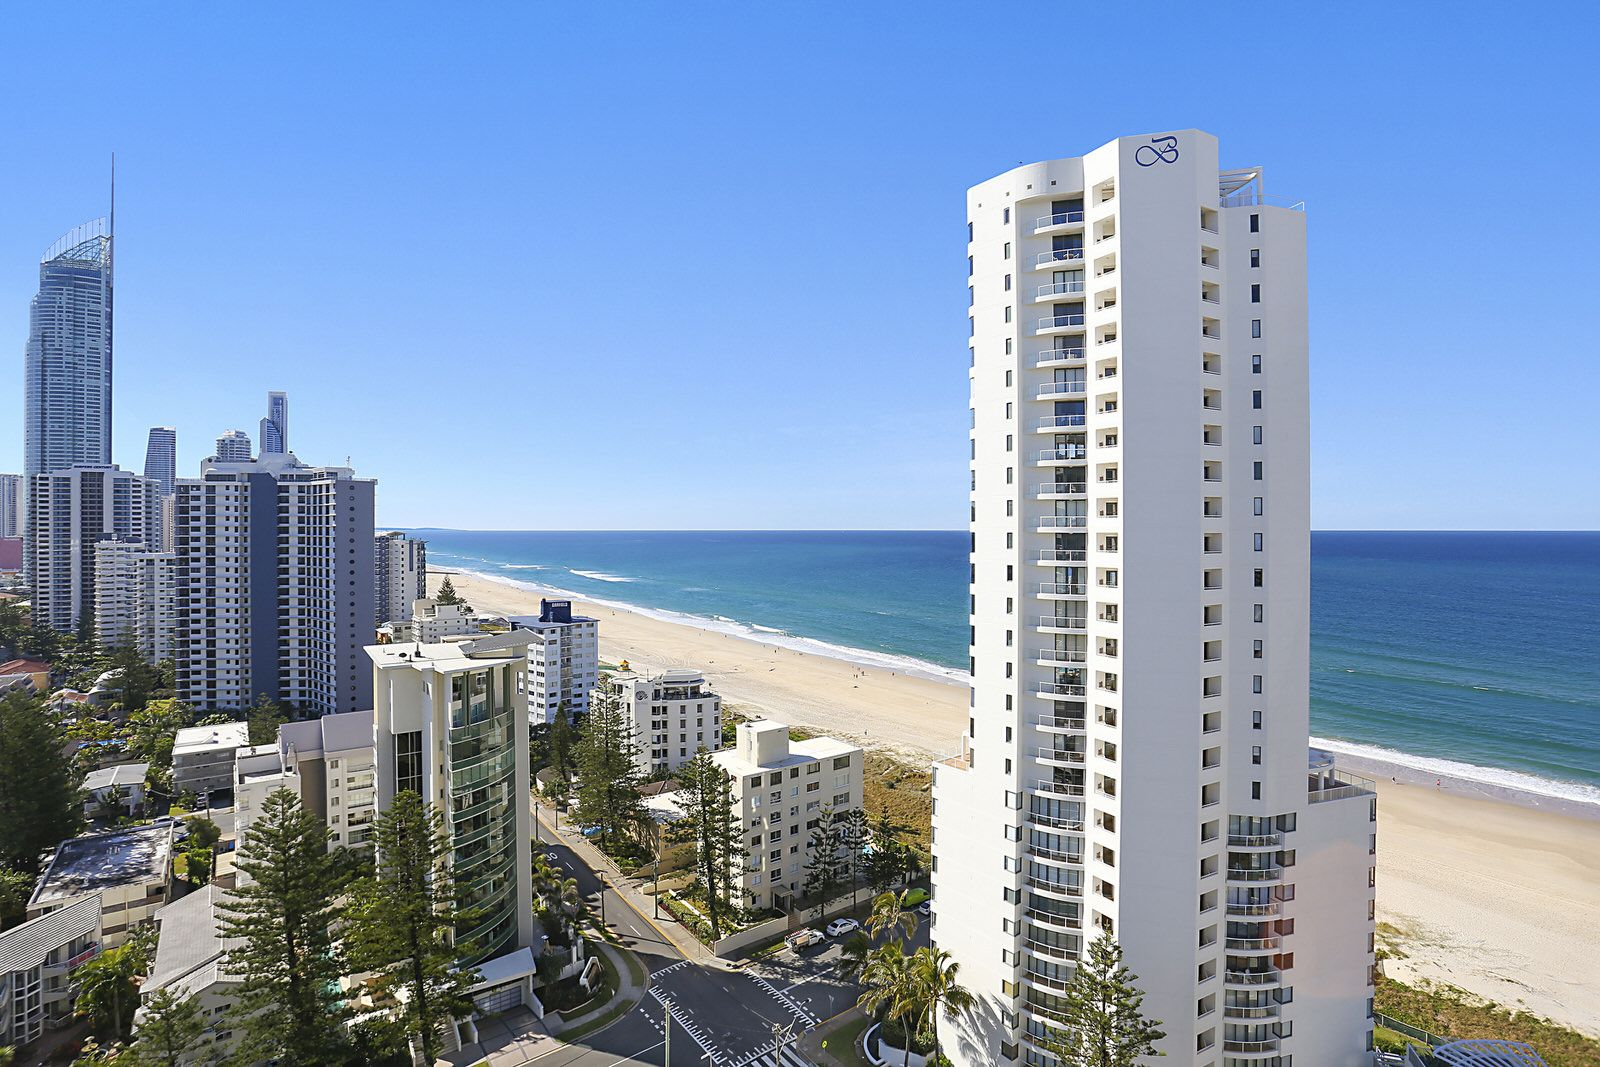 19A/7 Fern Street, Surfers Paradise QLD 4217, Image 0